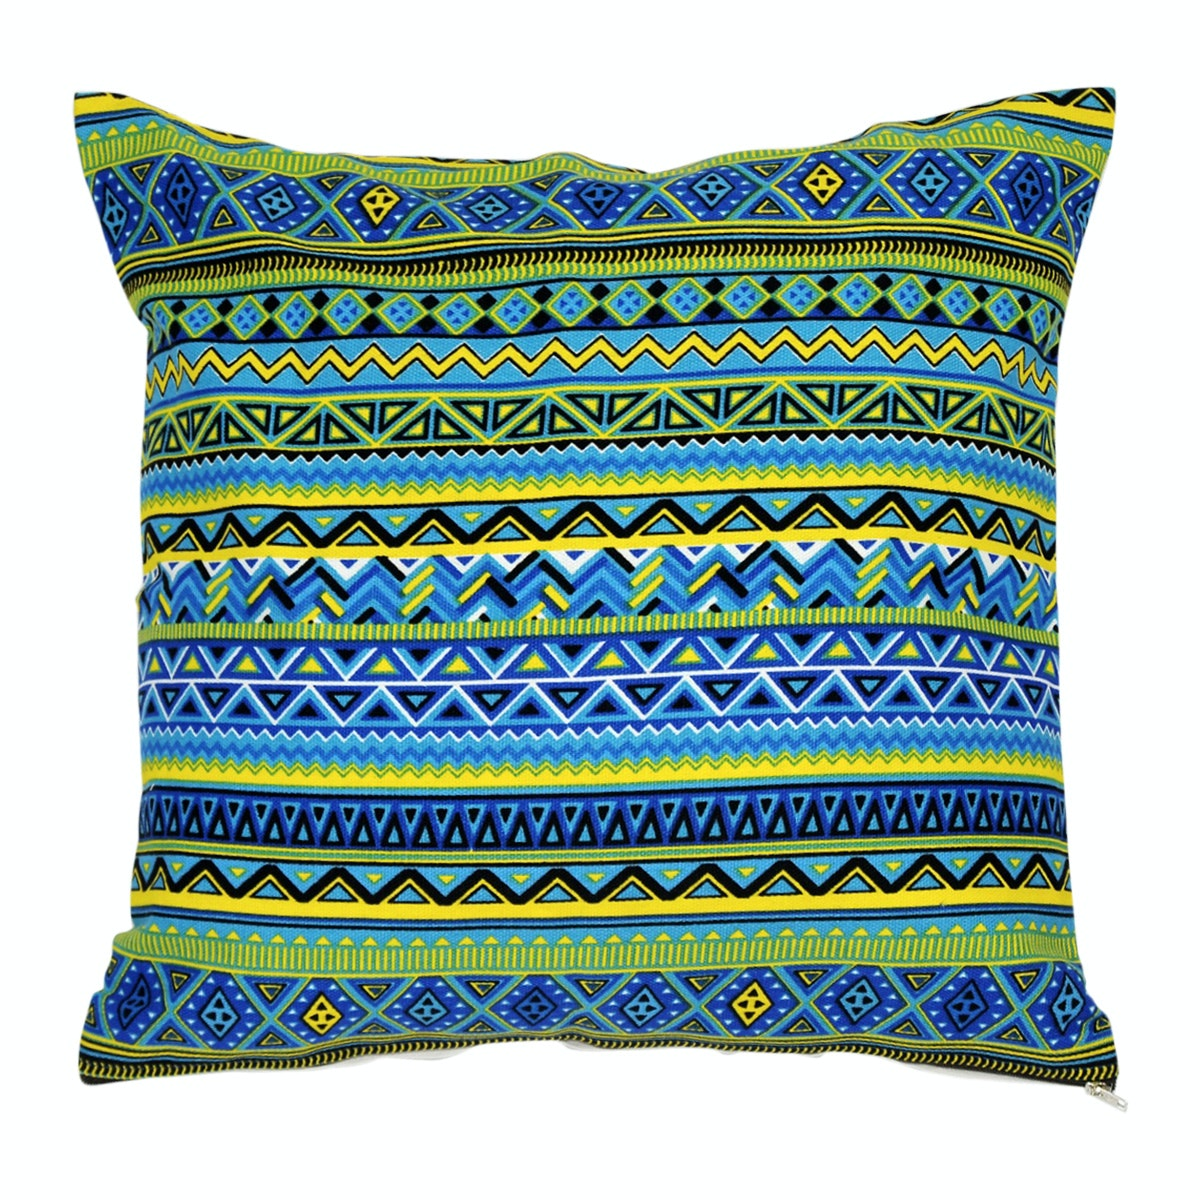 Stiletto Living Cushion Cover / Sarung Bantal - Tribal Hijau